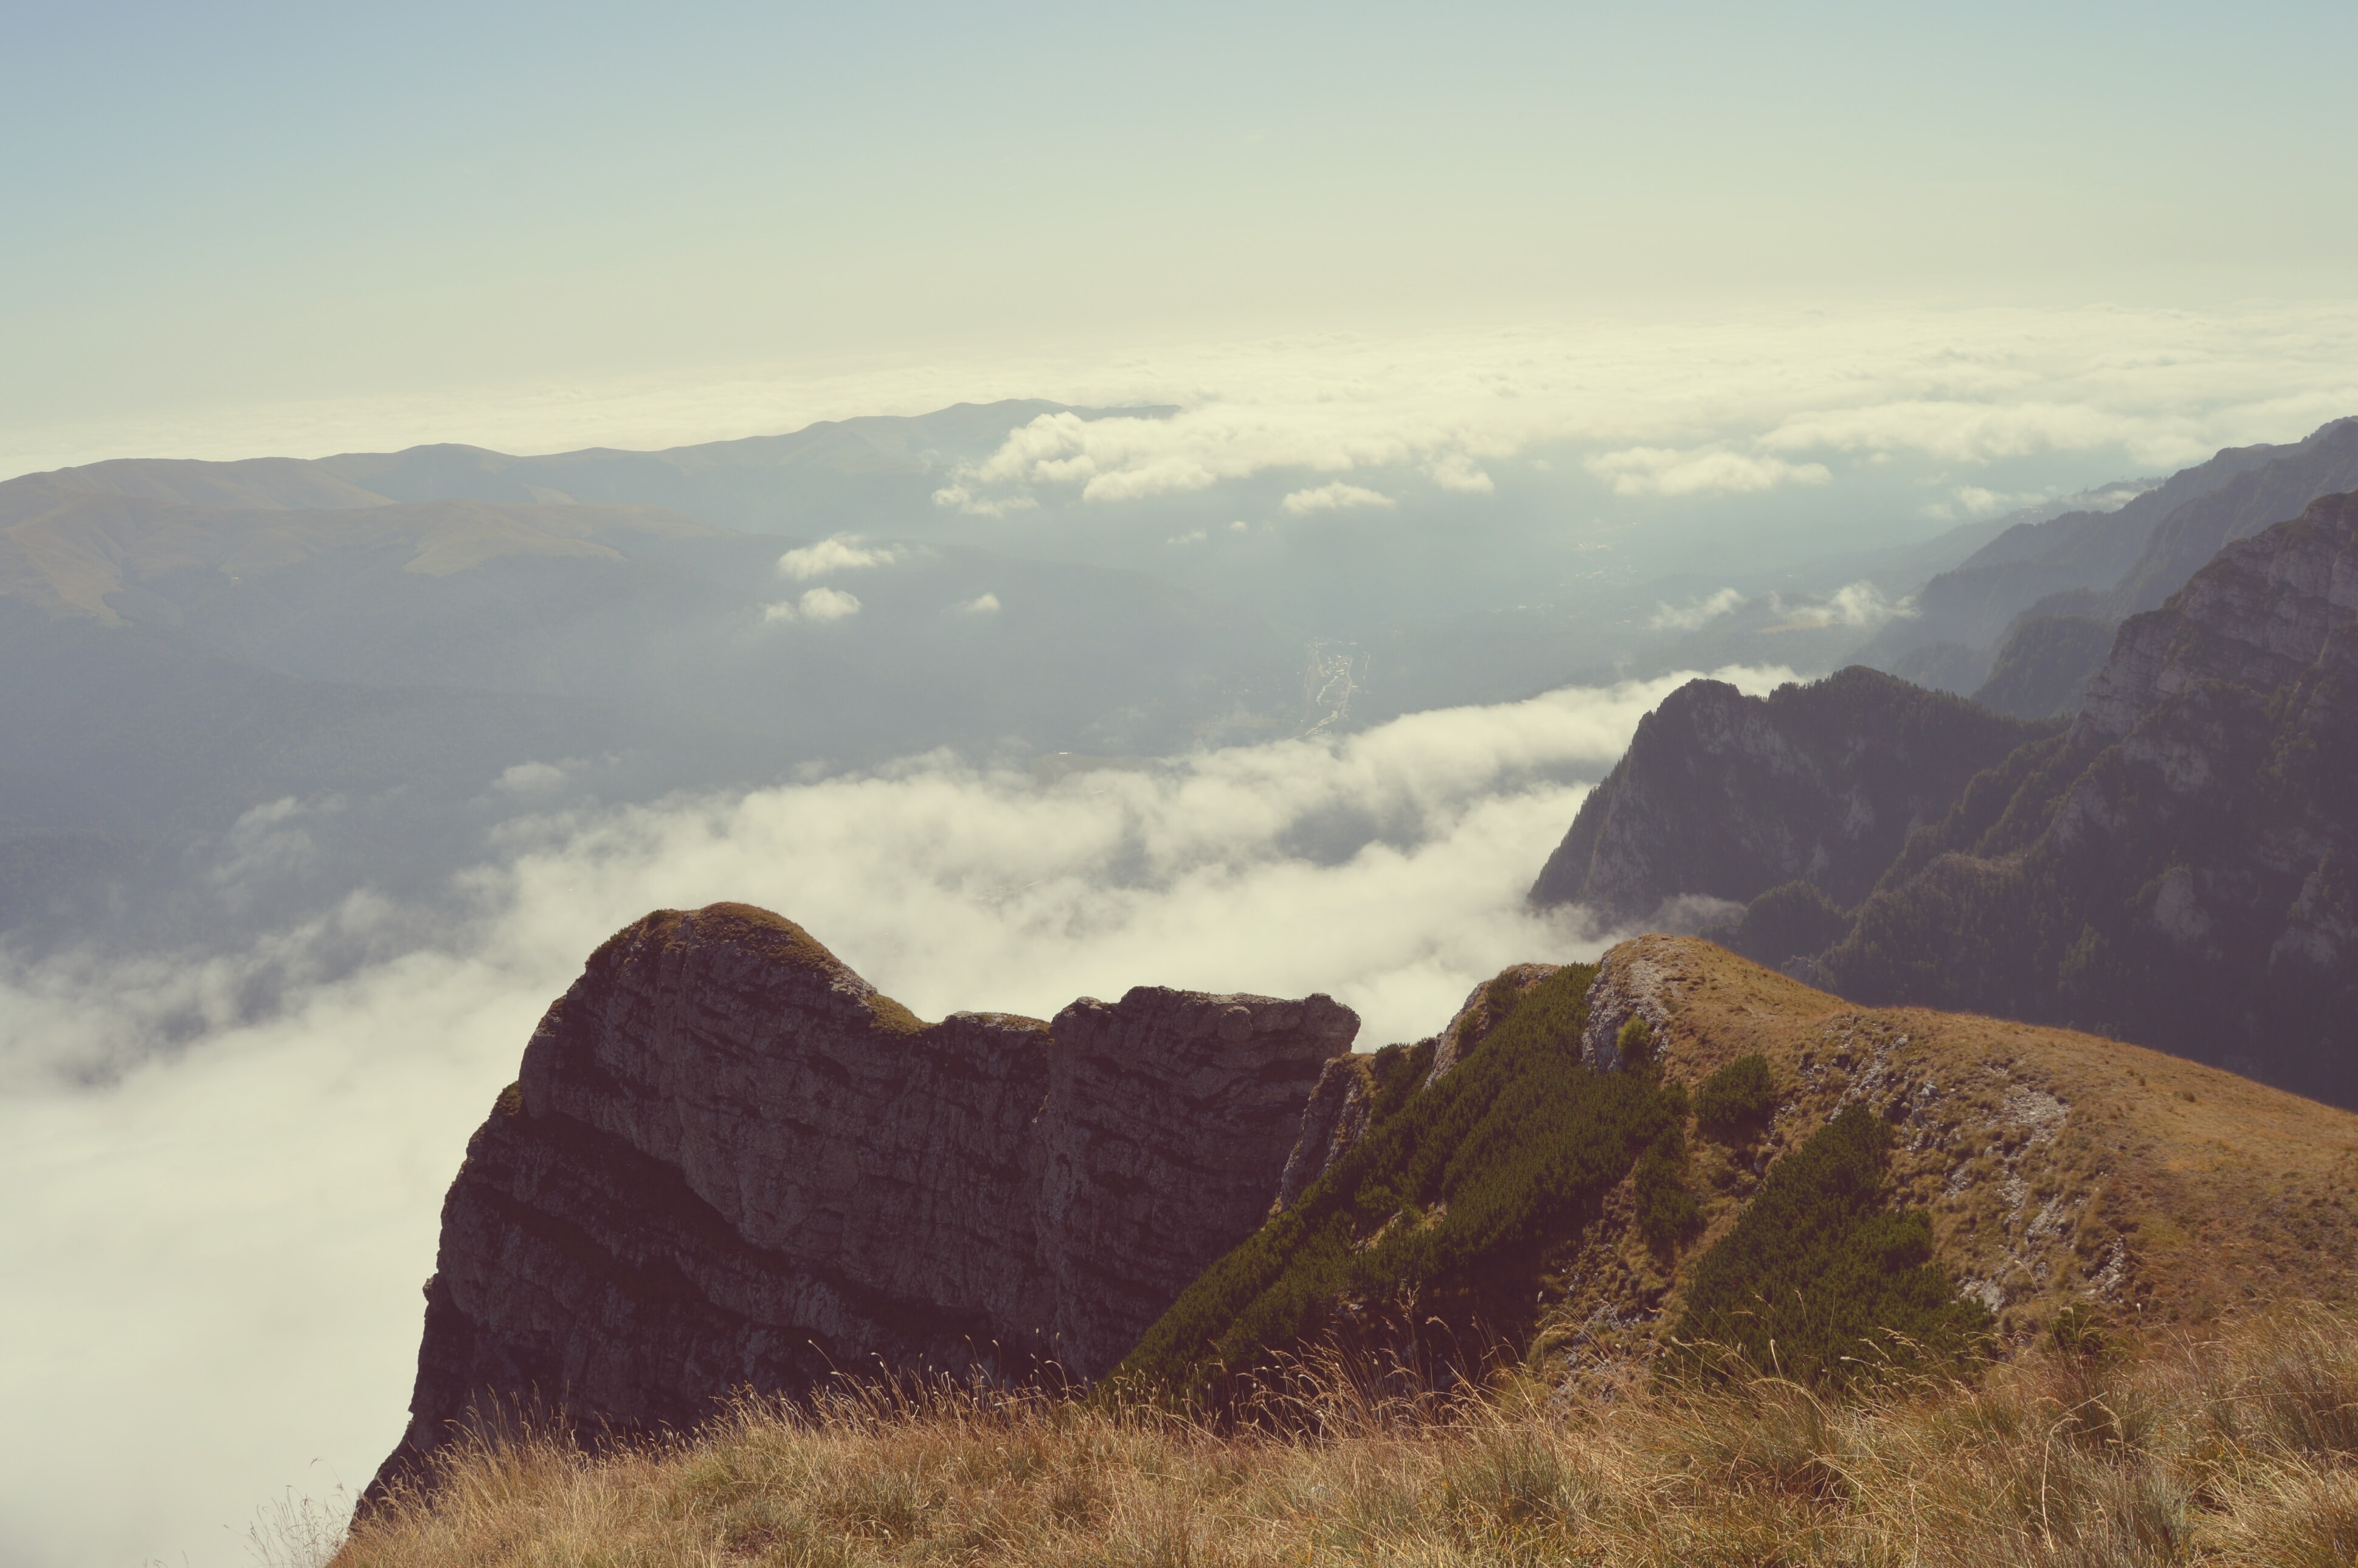 View from a mountain's crest on the clouds over a valley in Bucegi Mountains